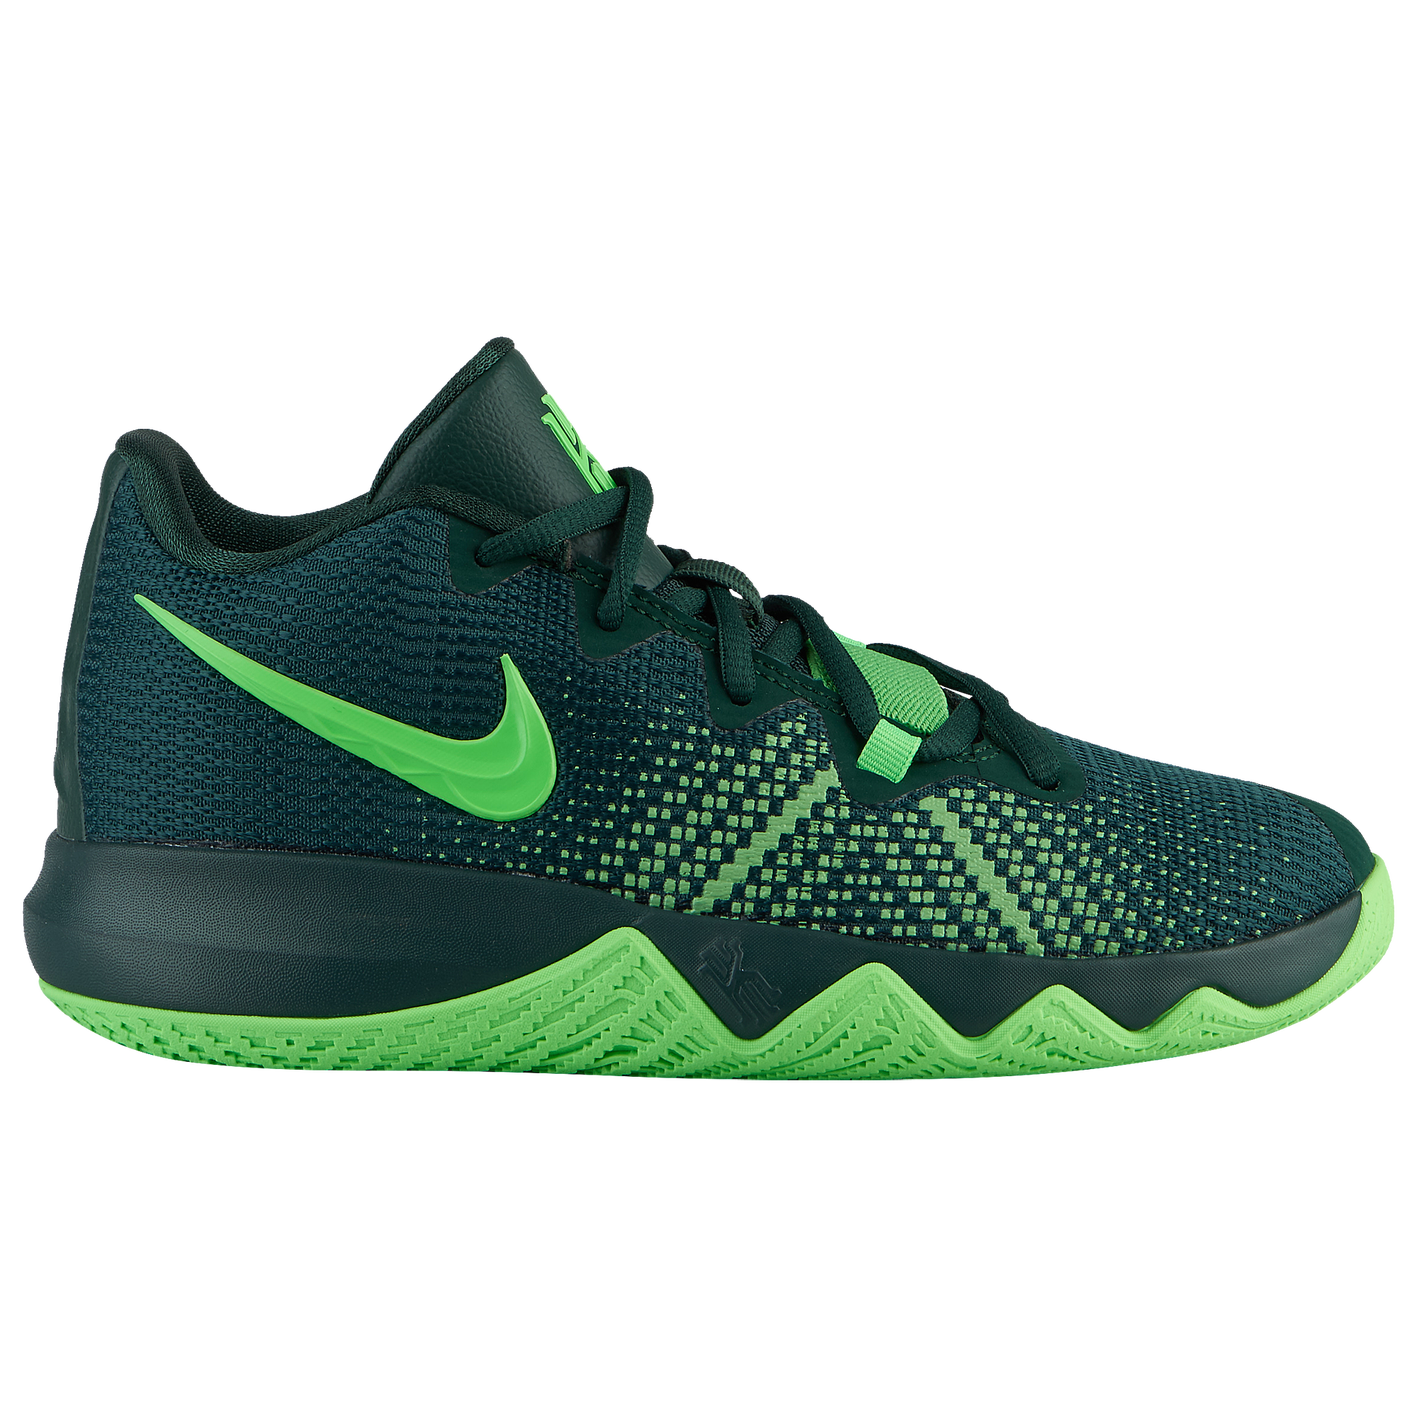 2d3c9026de1 Nike Kyrie Flytrap - Boys  Grade School - Basketball - Shoes ...